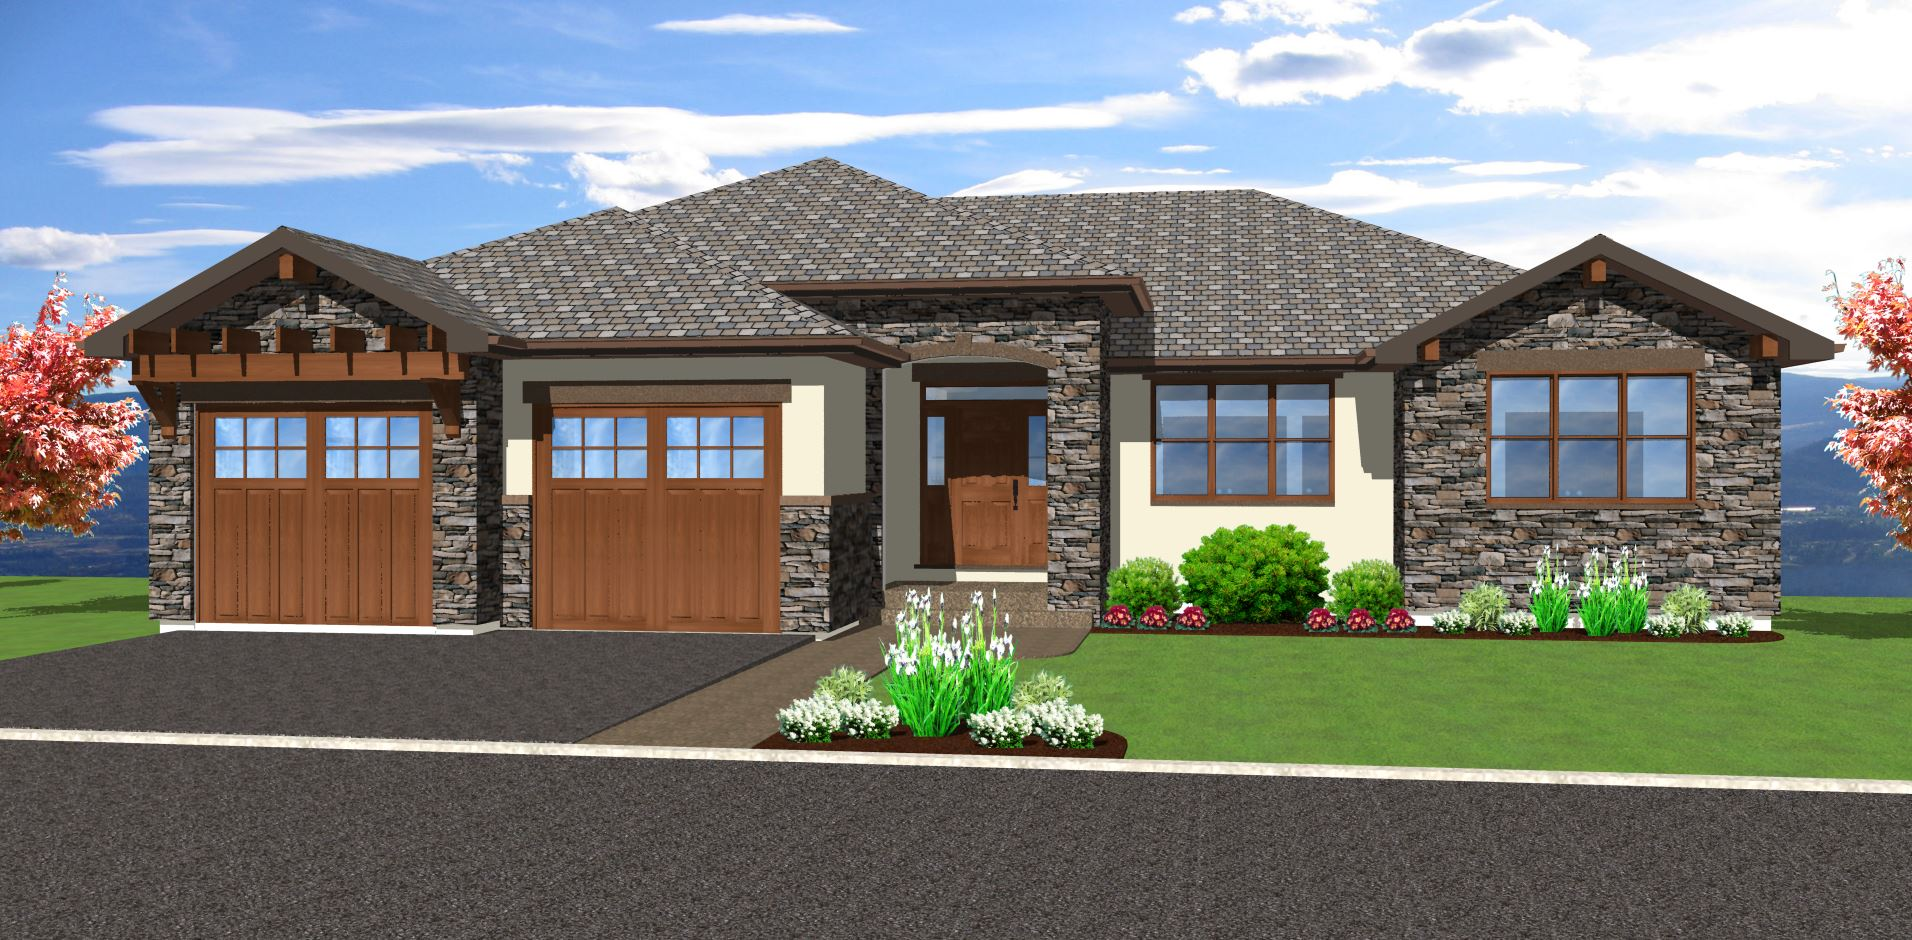 Spacious hillside home with walkout basement 67702mg for Spacious house plans